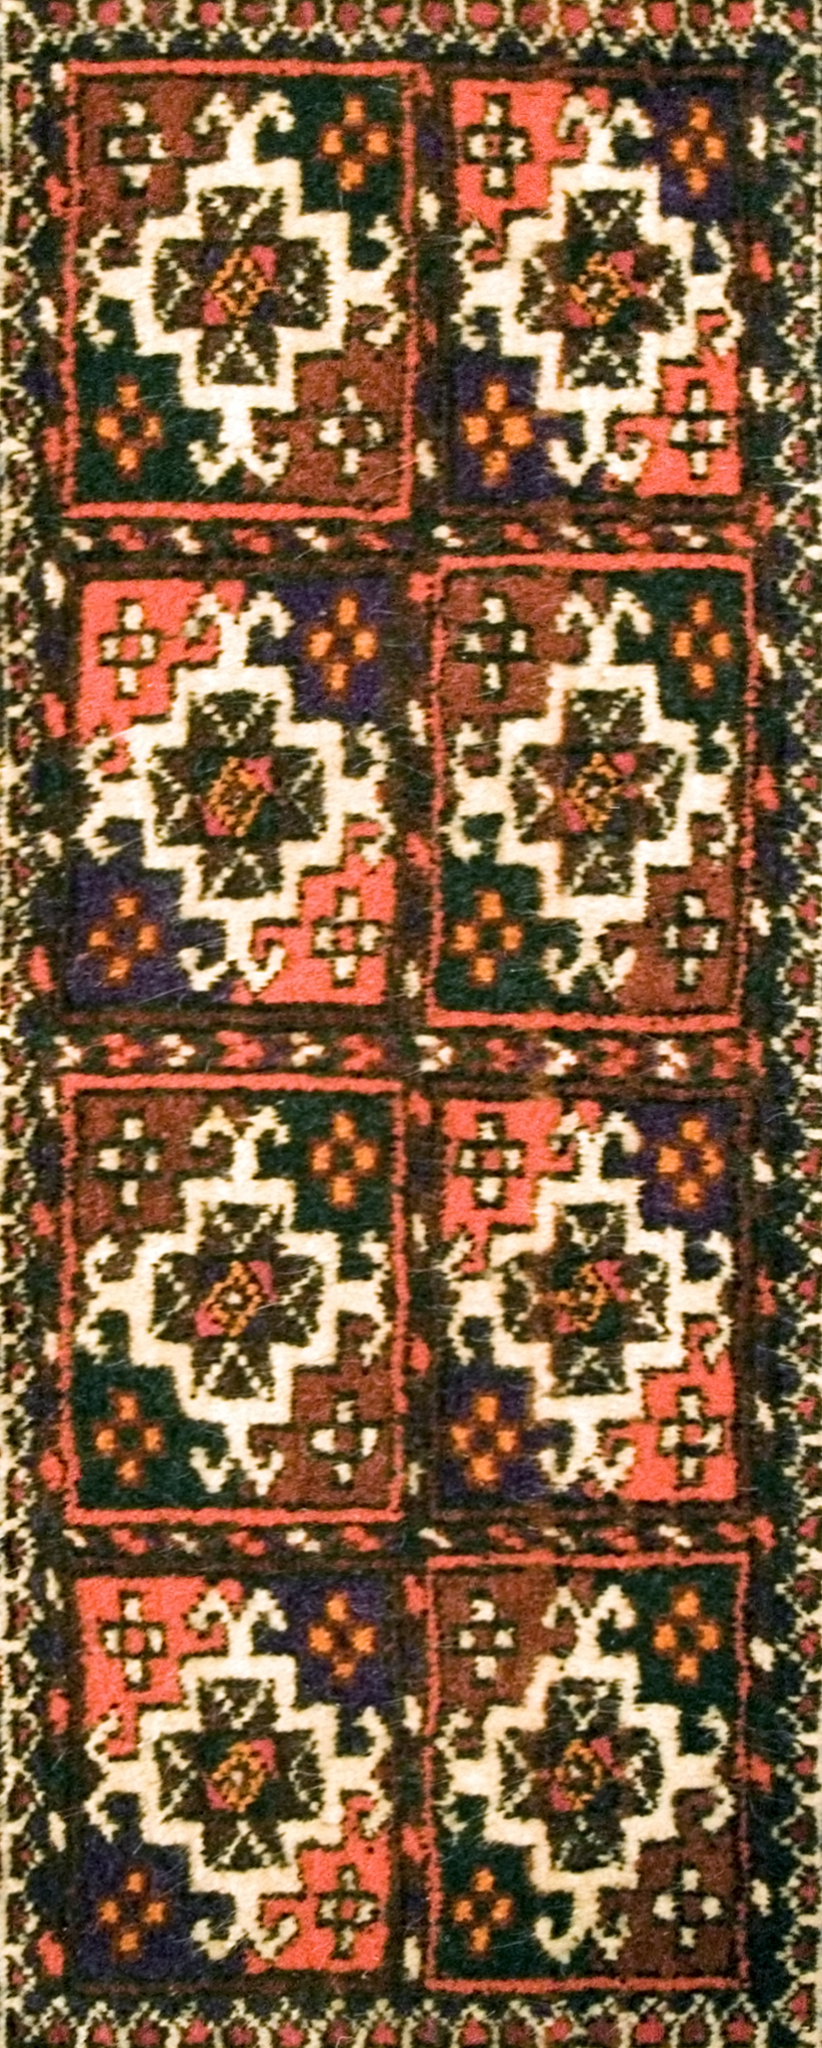 Complex Colorful Rug.jpg